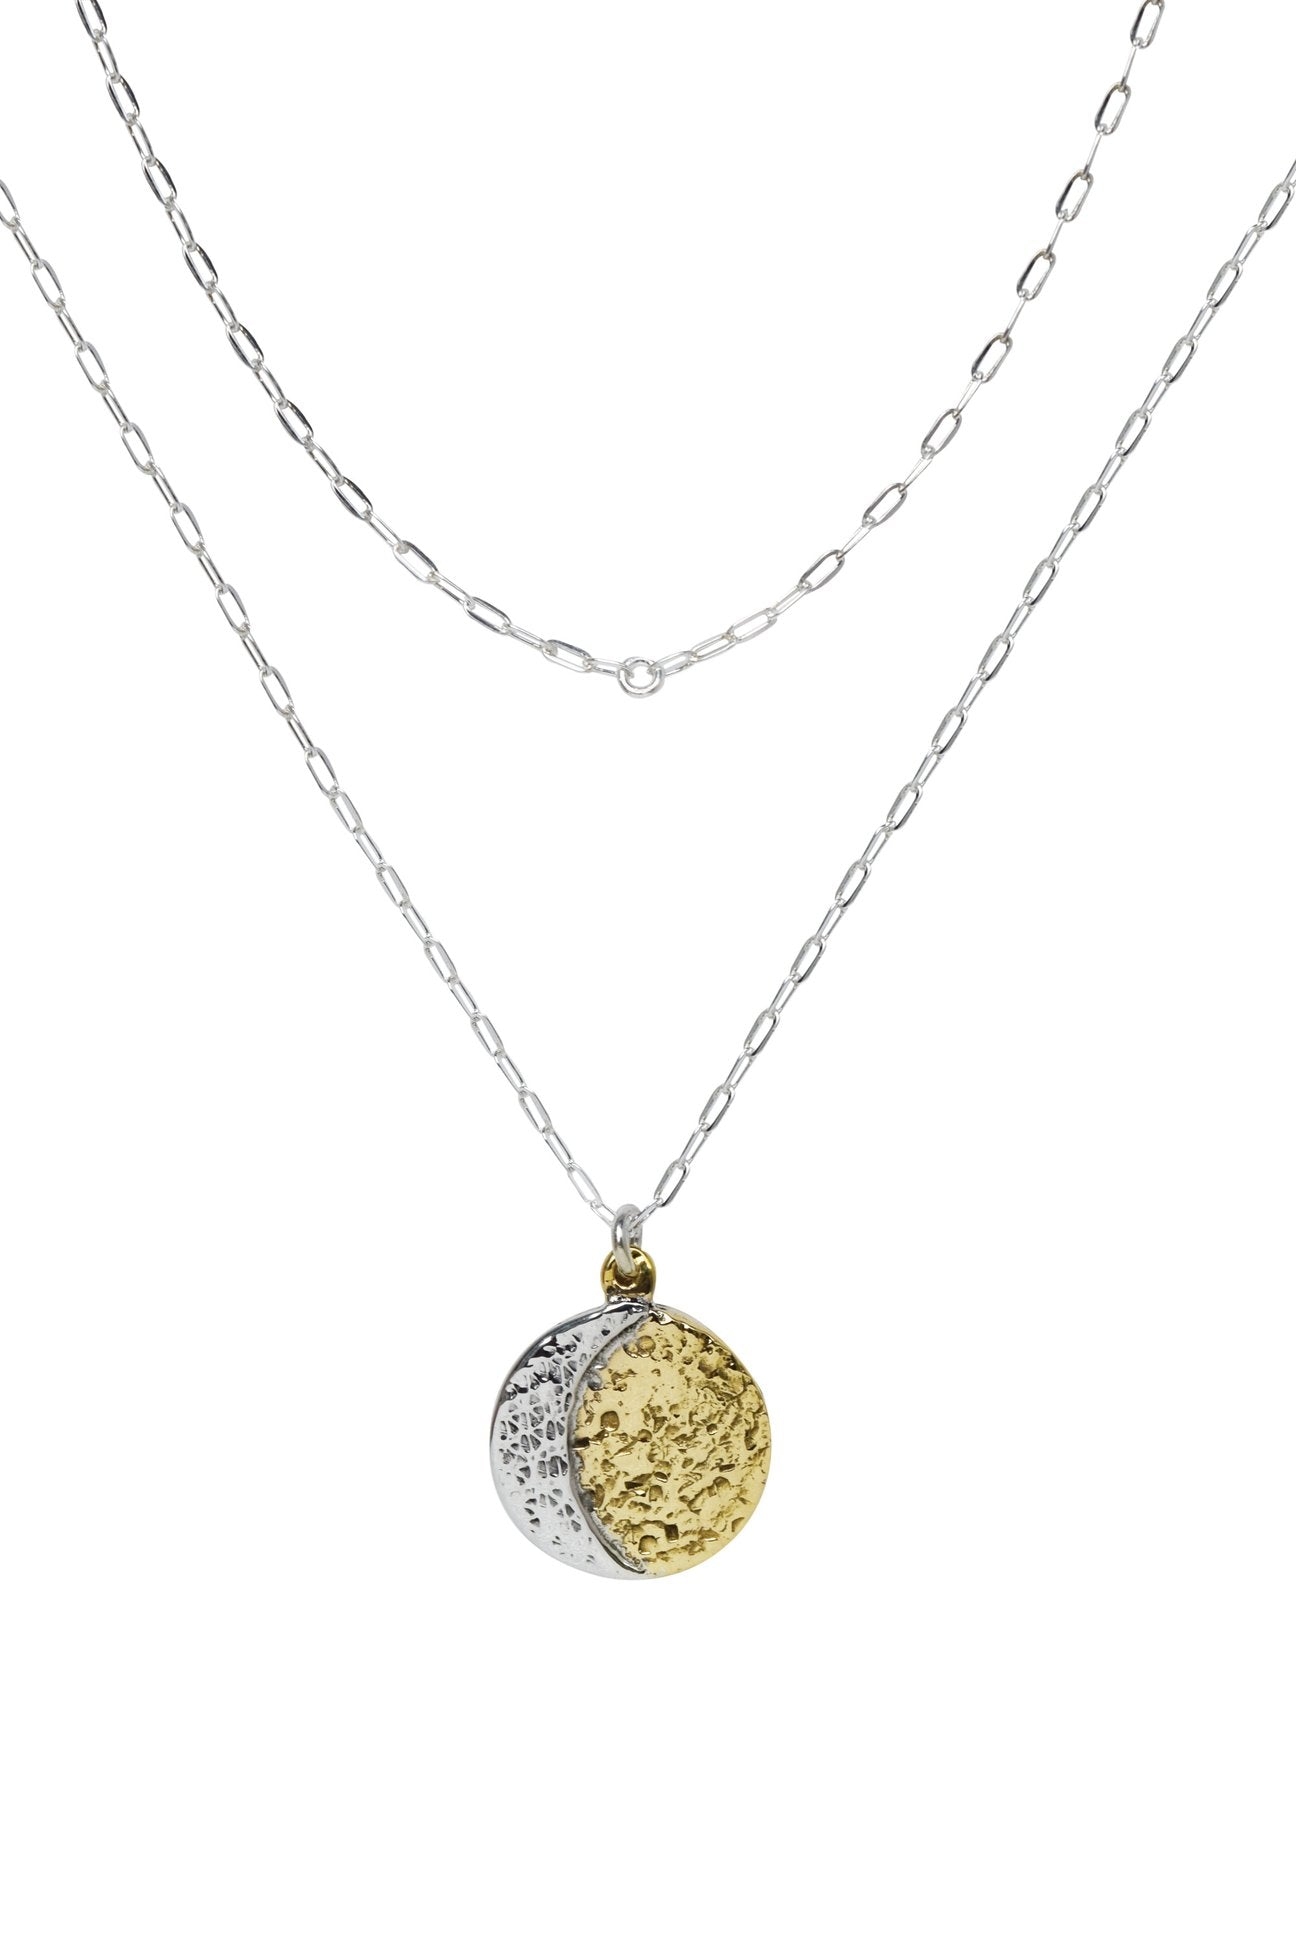 Mooncoin Mixed Metal Necklace